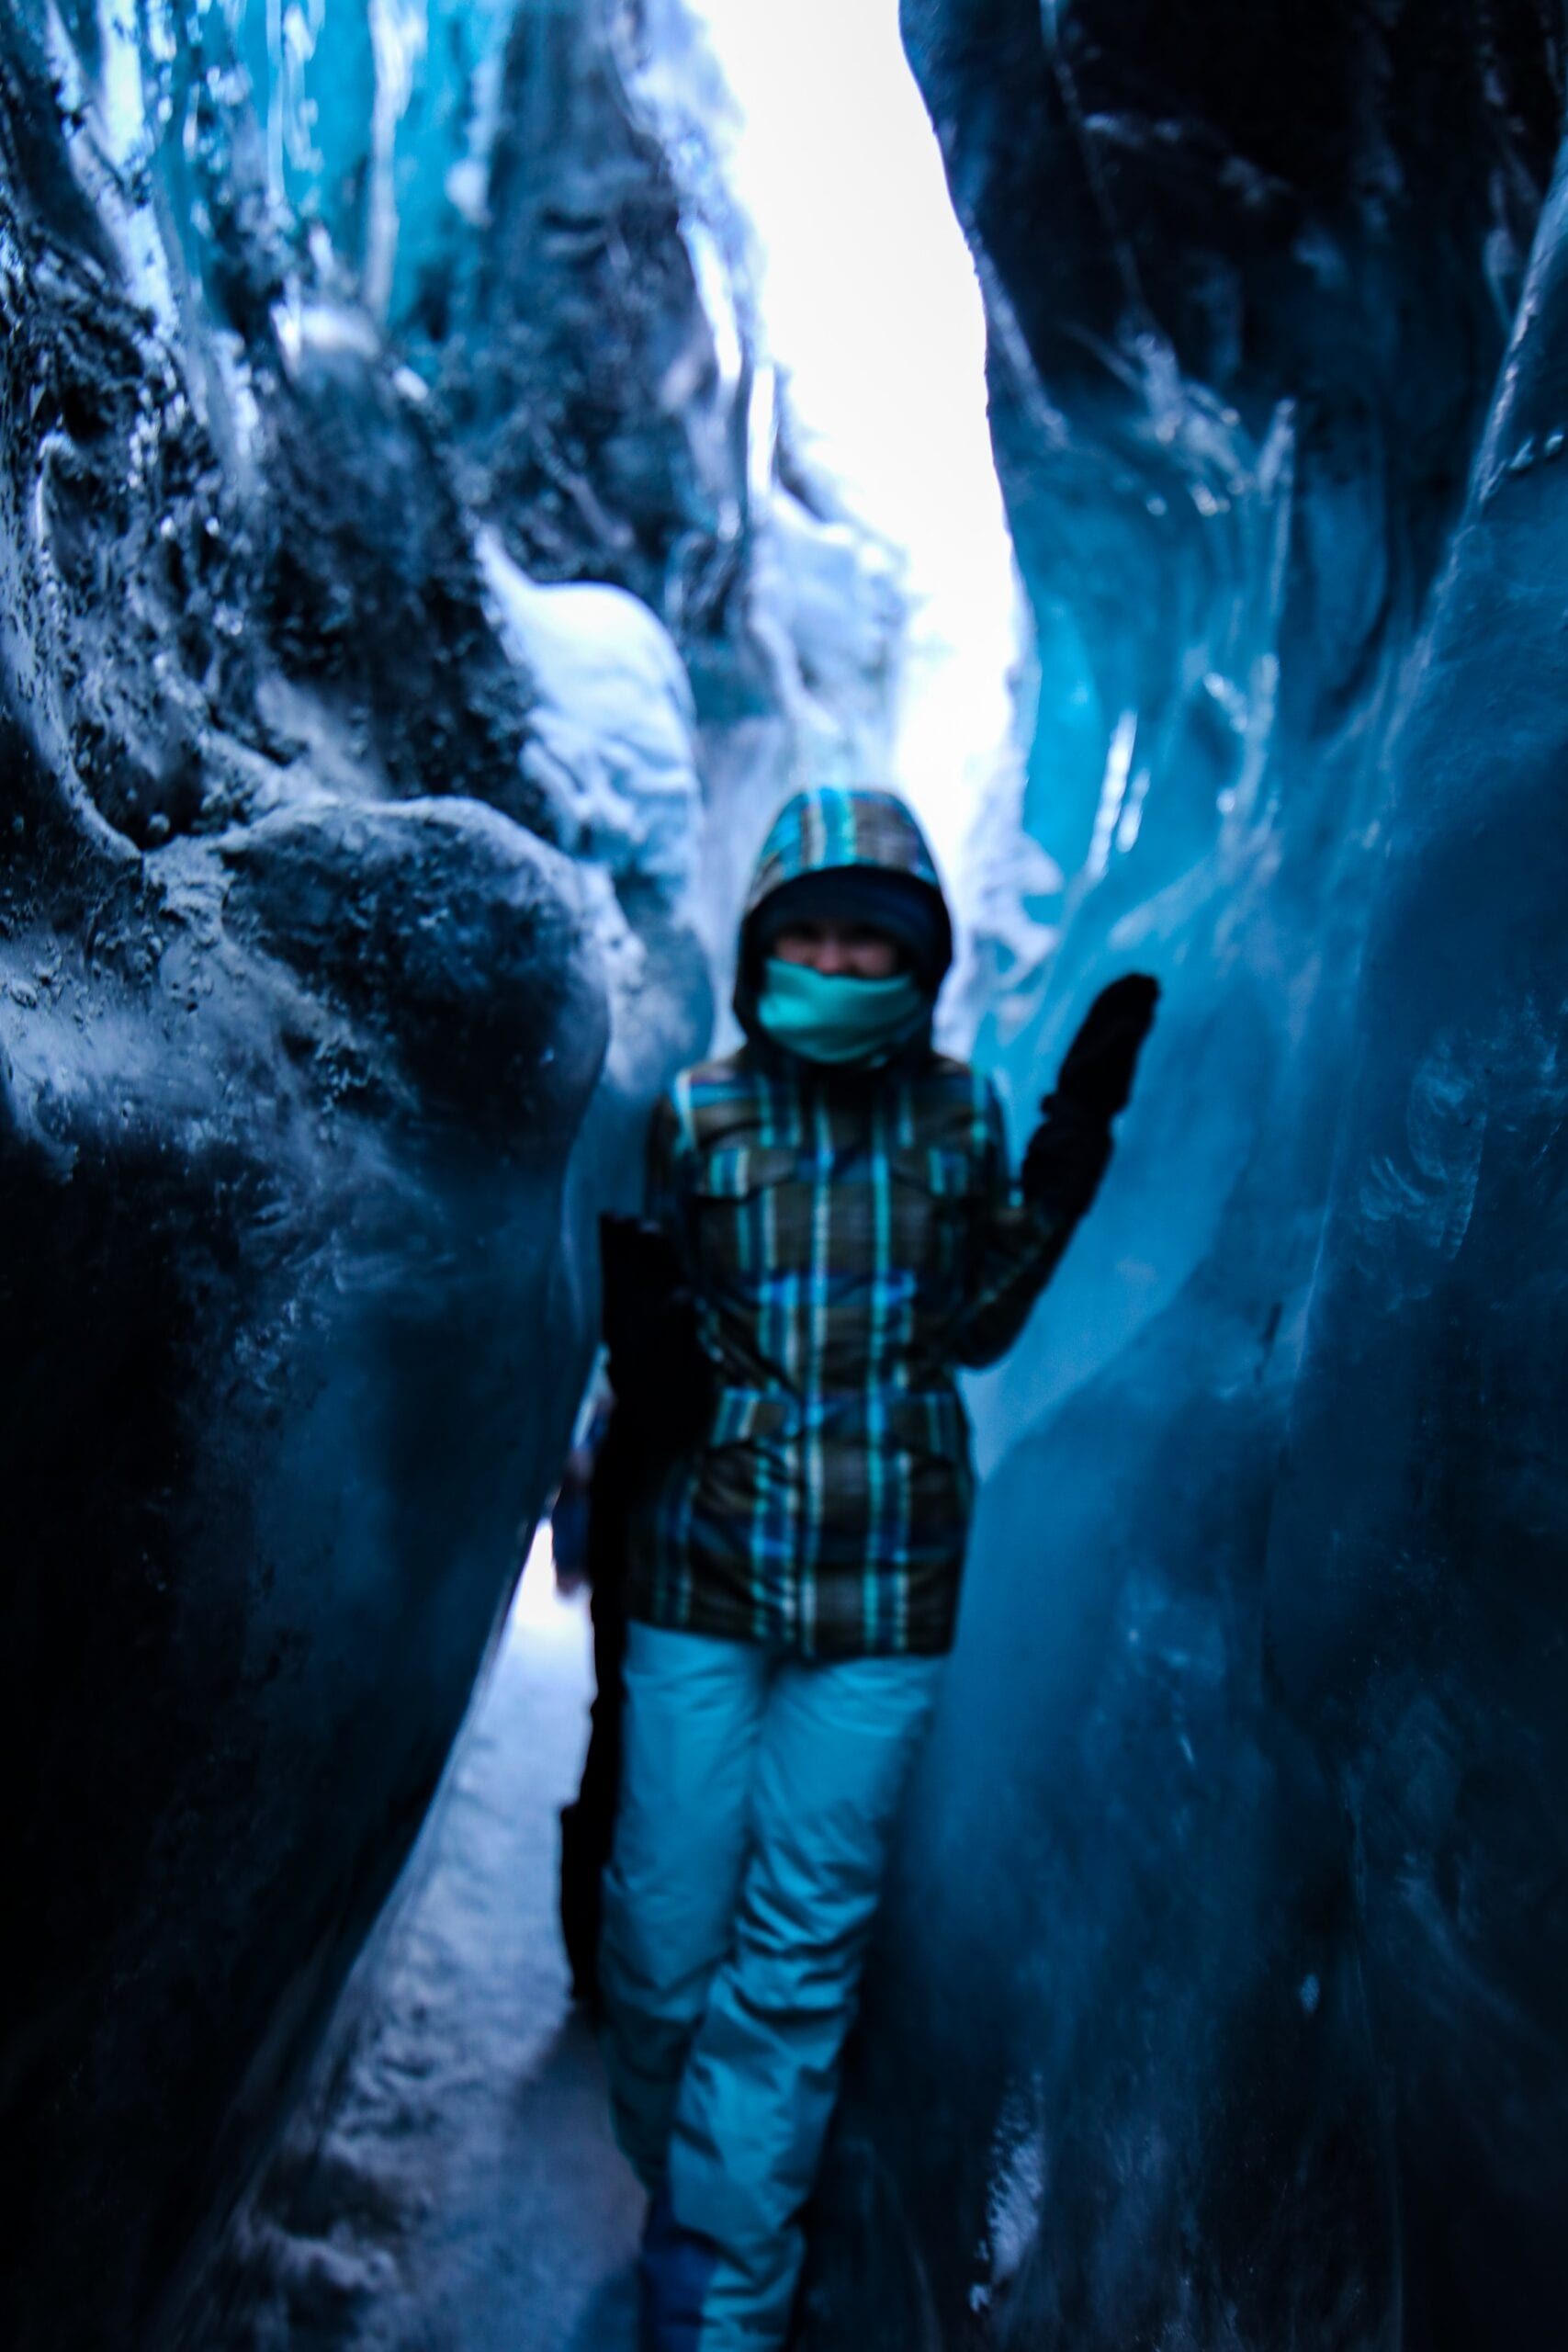 Walk inside of caves and open crevasses